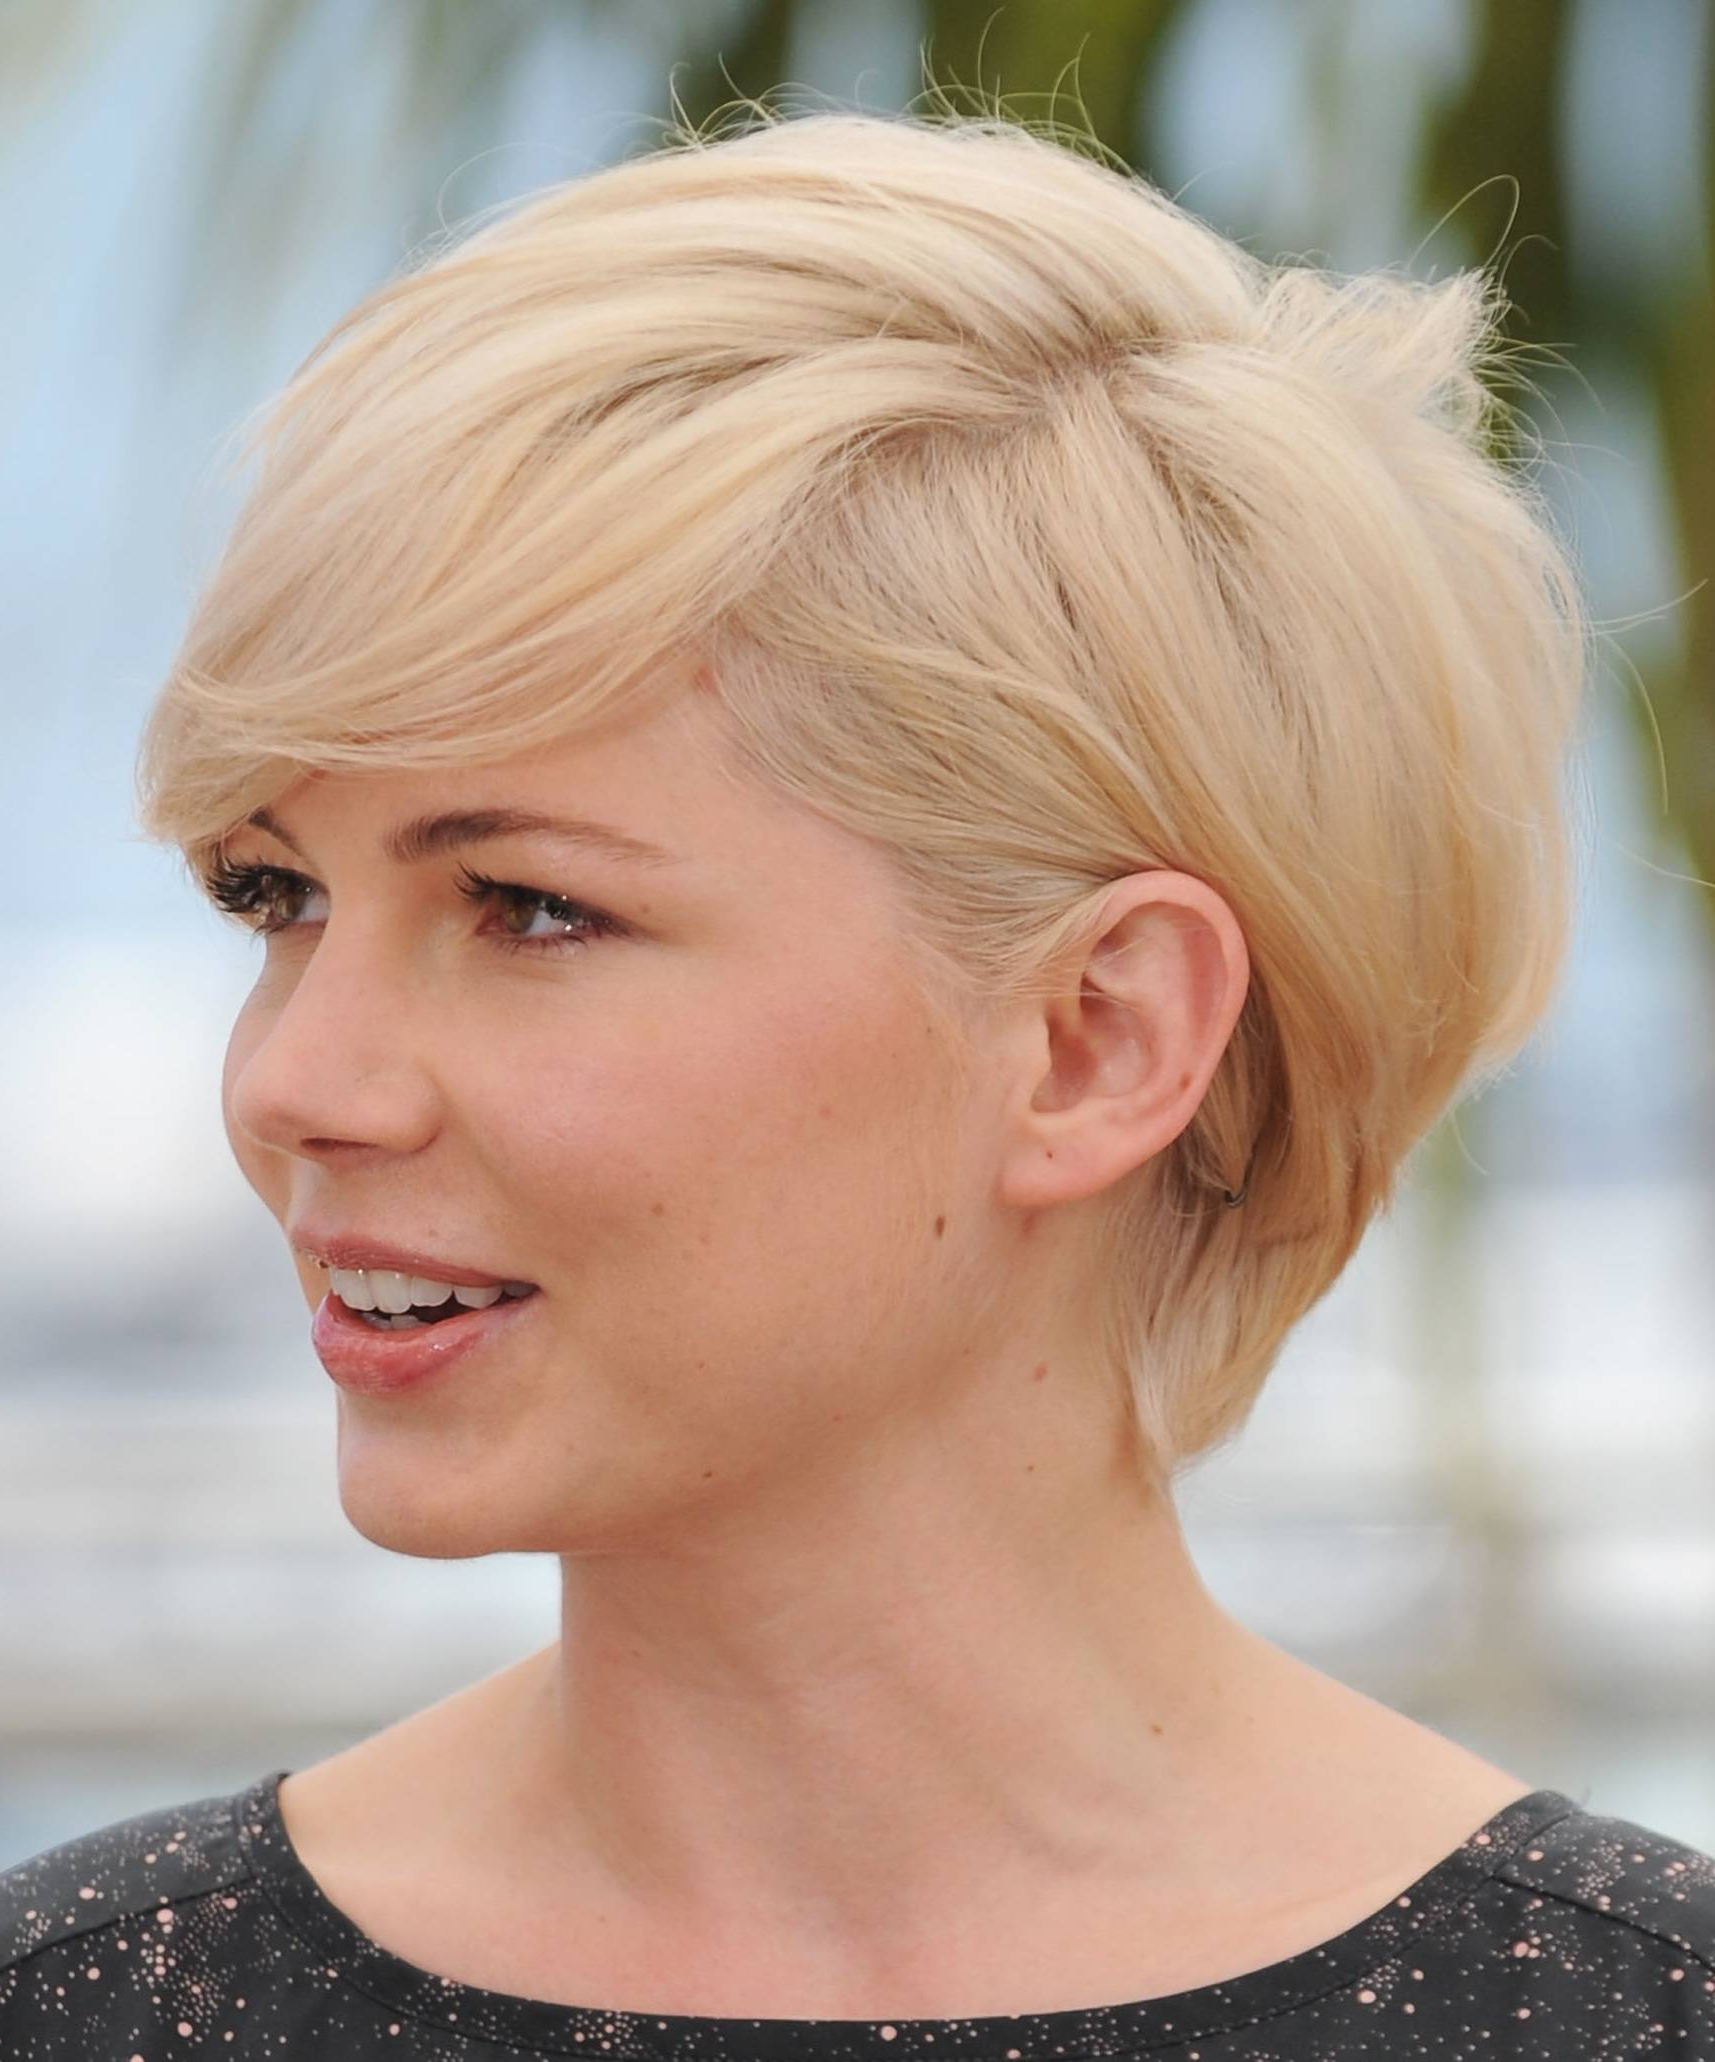 Womens Short Blonde Hairstyles – Hairstyle For Women & Man In Feminine Short Hairstyles For Women (View 13 of 25)